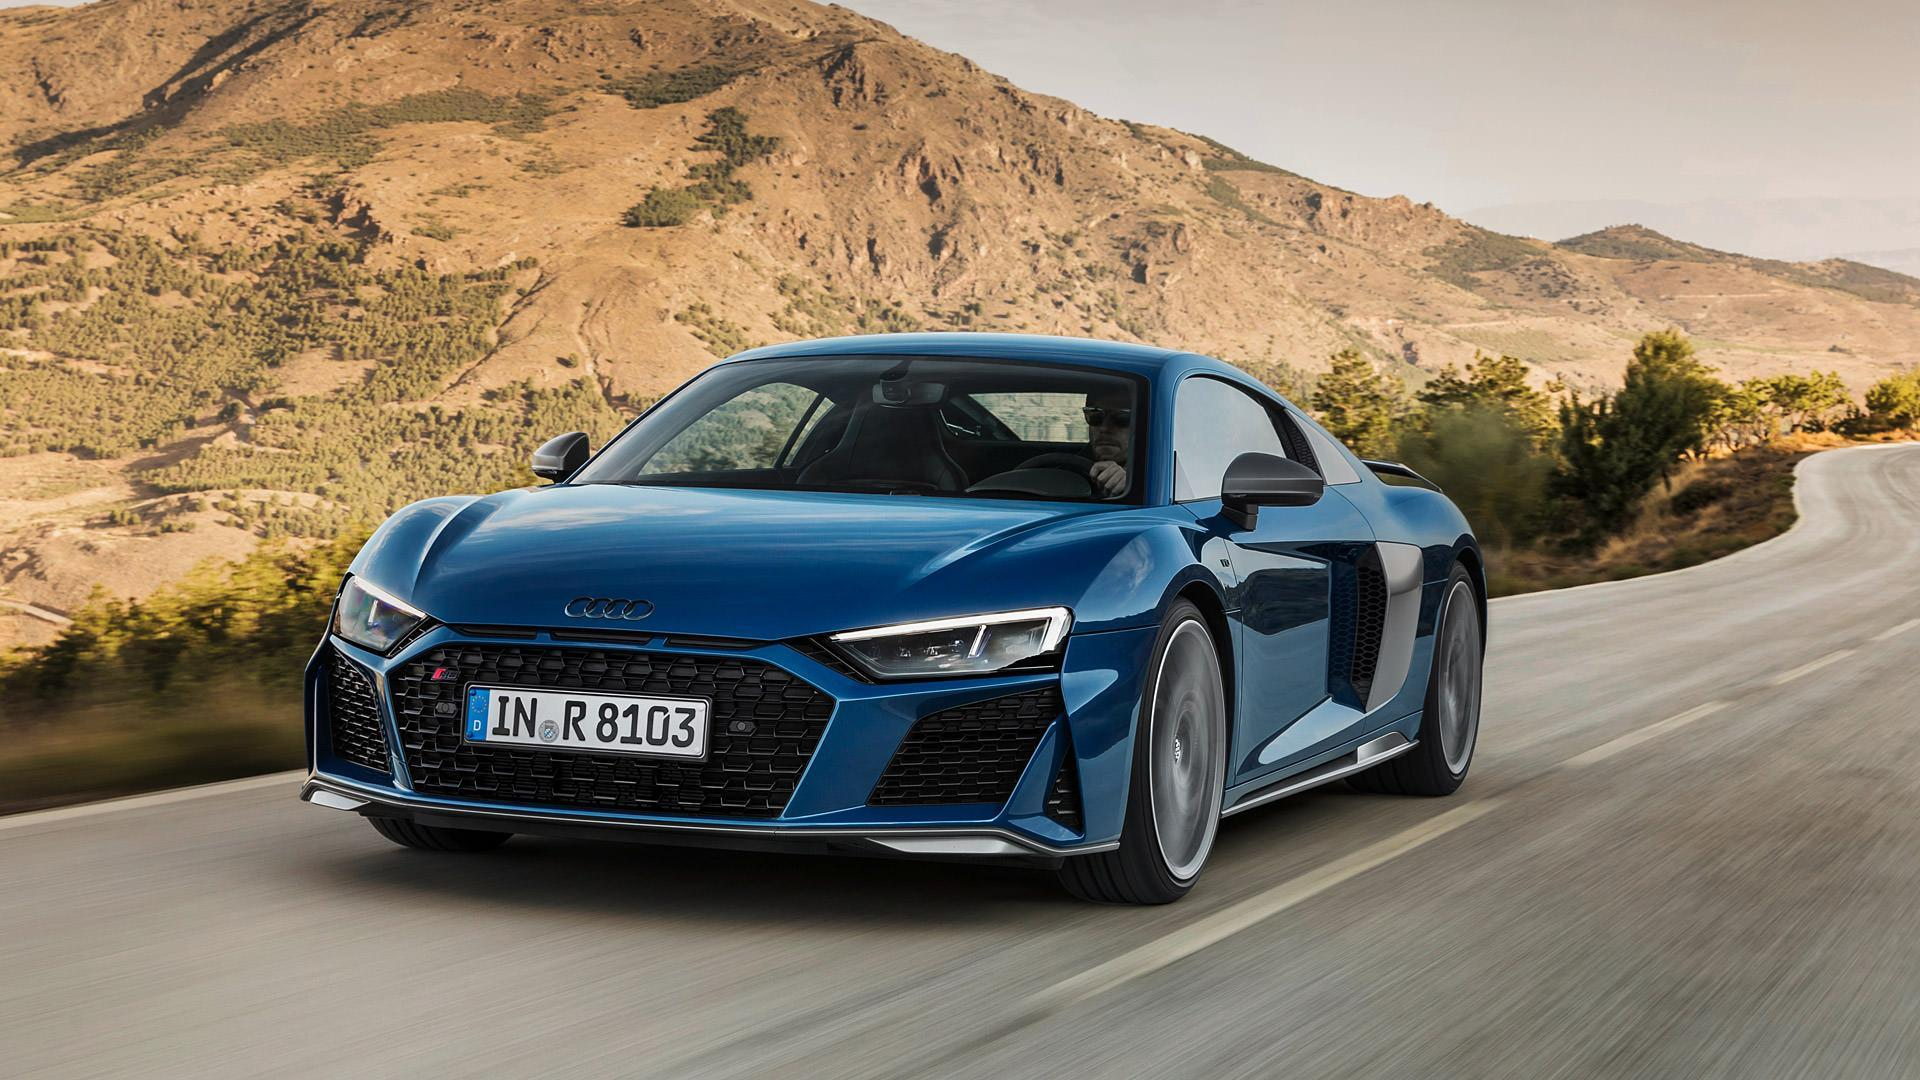 Audi R8 Wallpapers For Android Apk Download